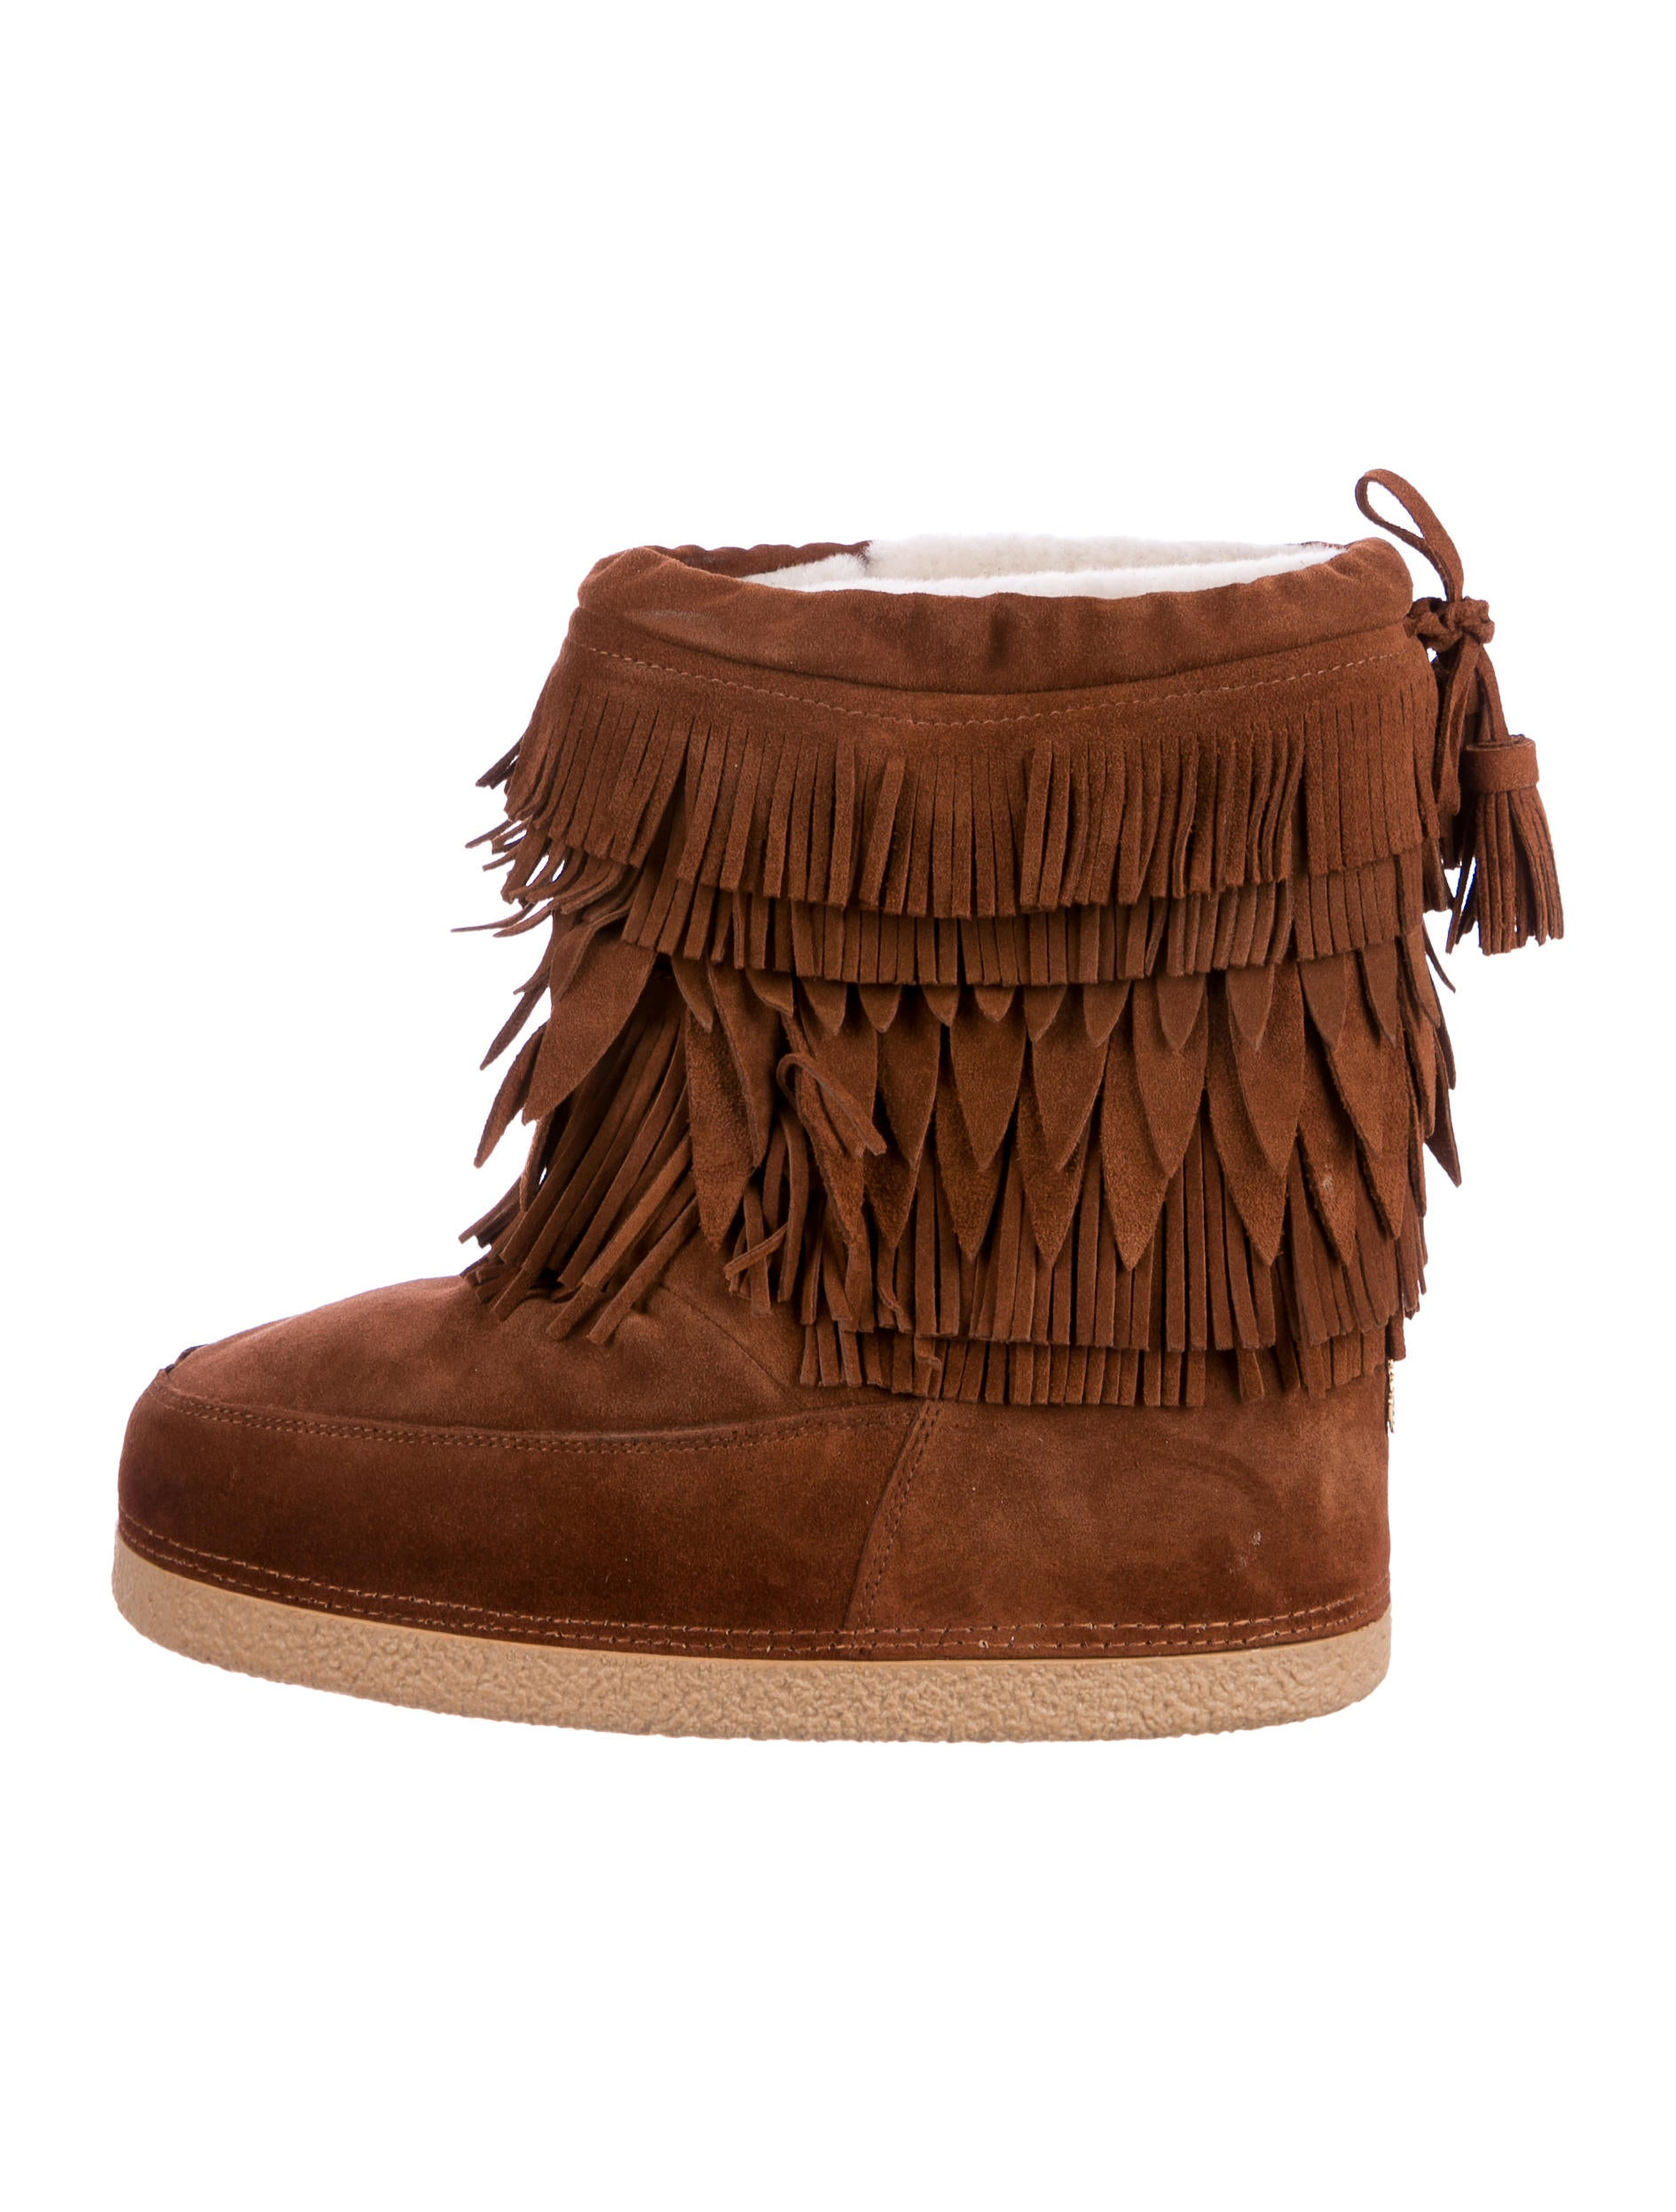 cheap limited edition really cheap Aquazzura Fur & Fringe-Trimmed Booties clearance 2015 clearance fashionable K6lN3